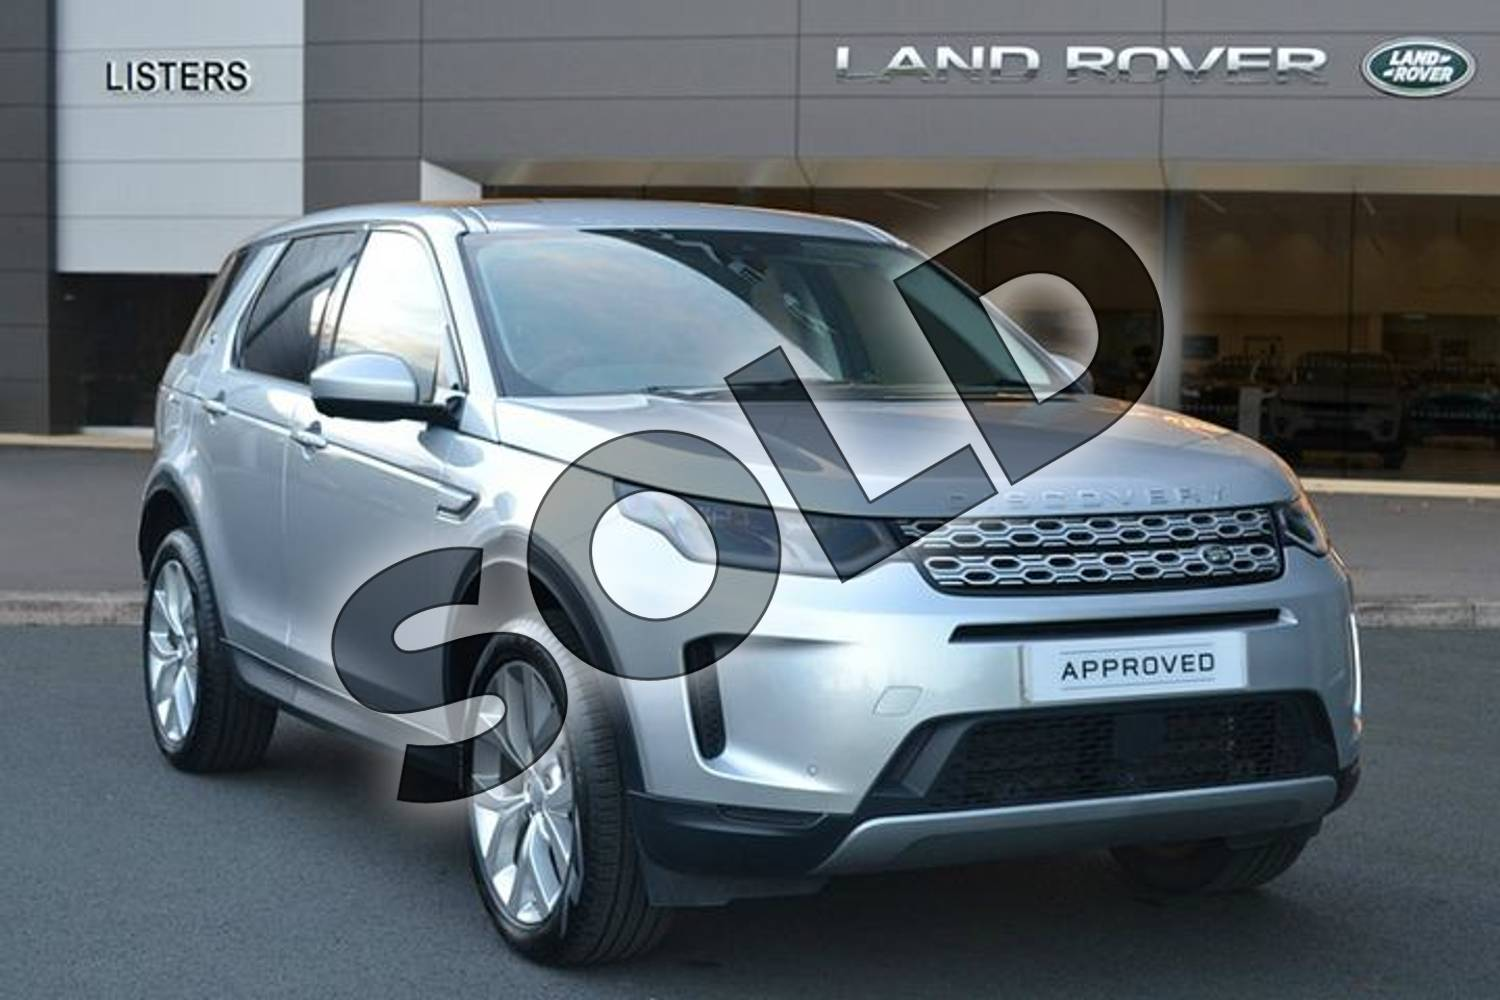 2019 Land Rover Discovery Sport Diesel SW 2.0 D180 HSE 5dr Auto in Indus Silver at Listers Land Rover Hereford